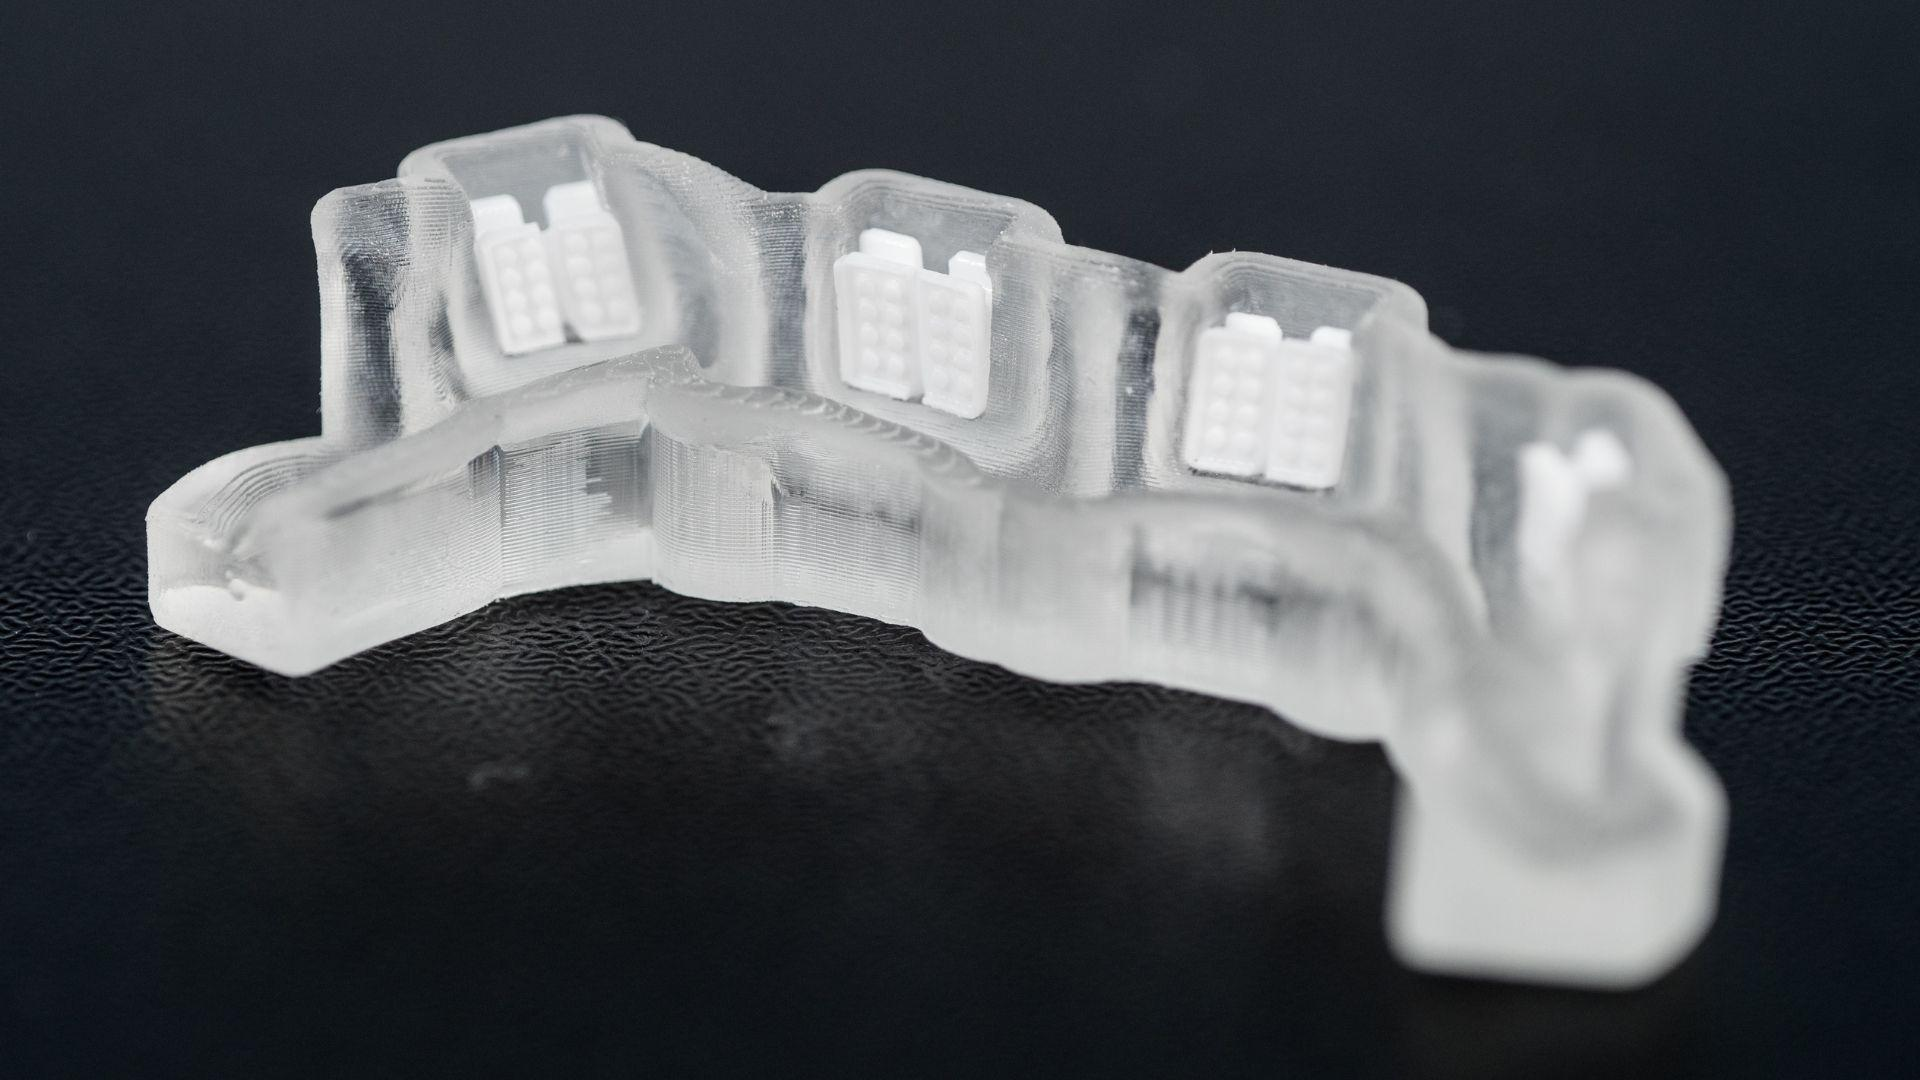 Closeup of LightForce's 3D printed custom dental braces and tray designed in nTopology